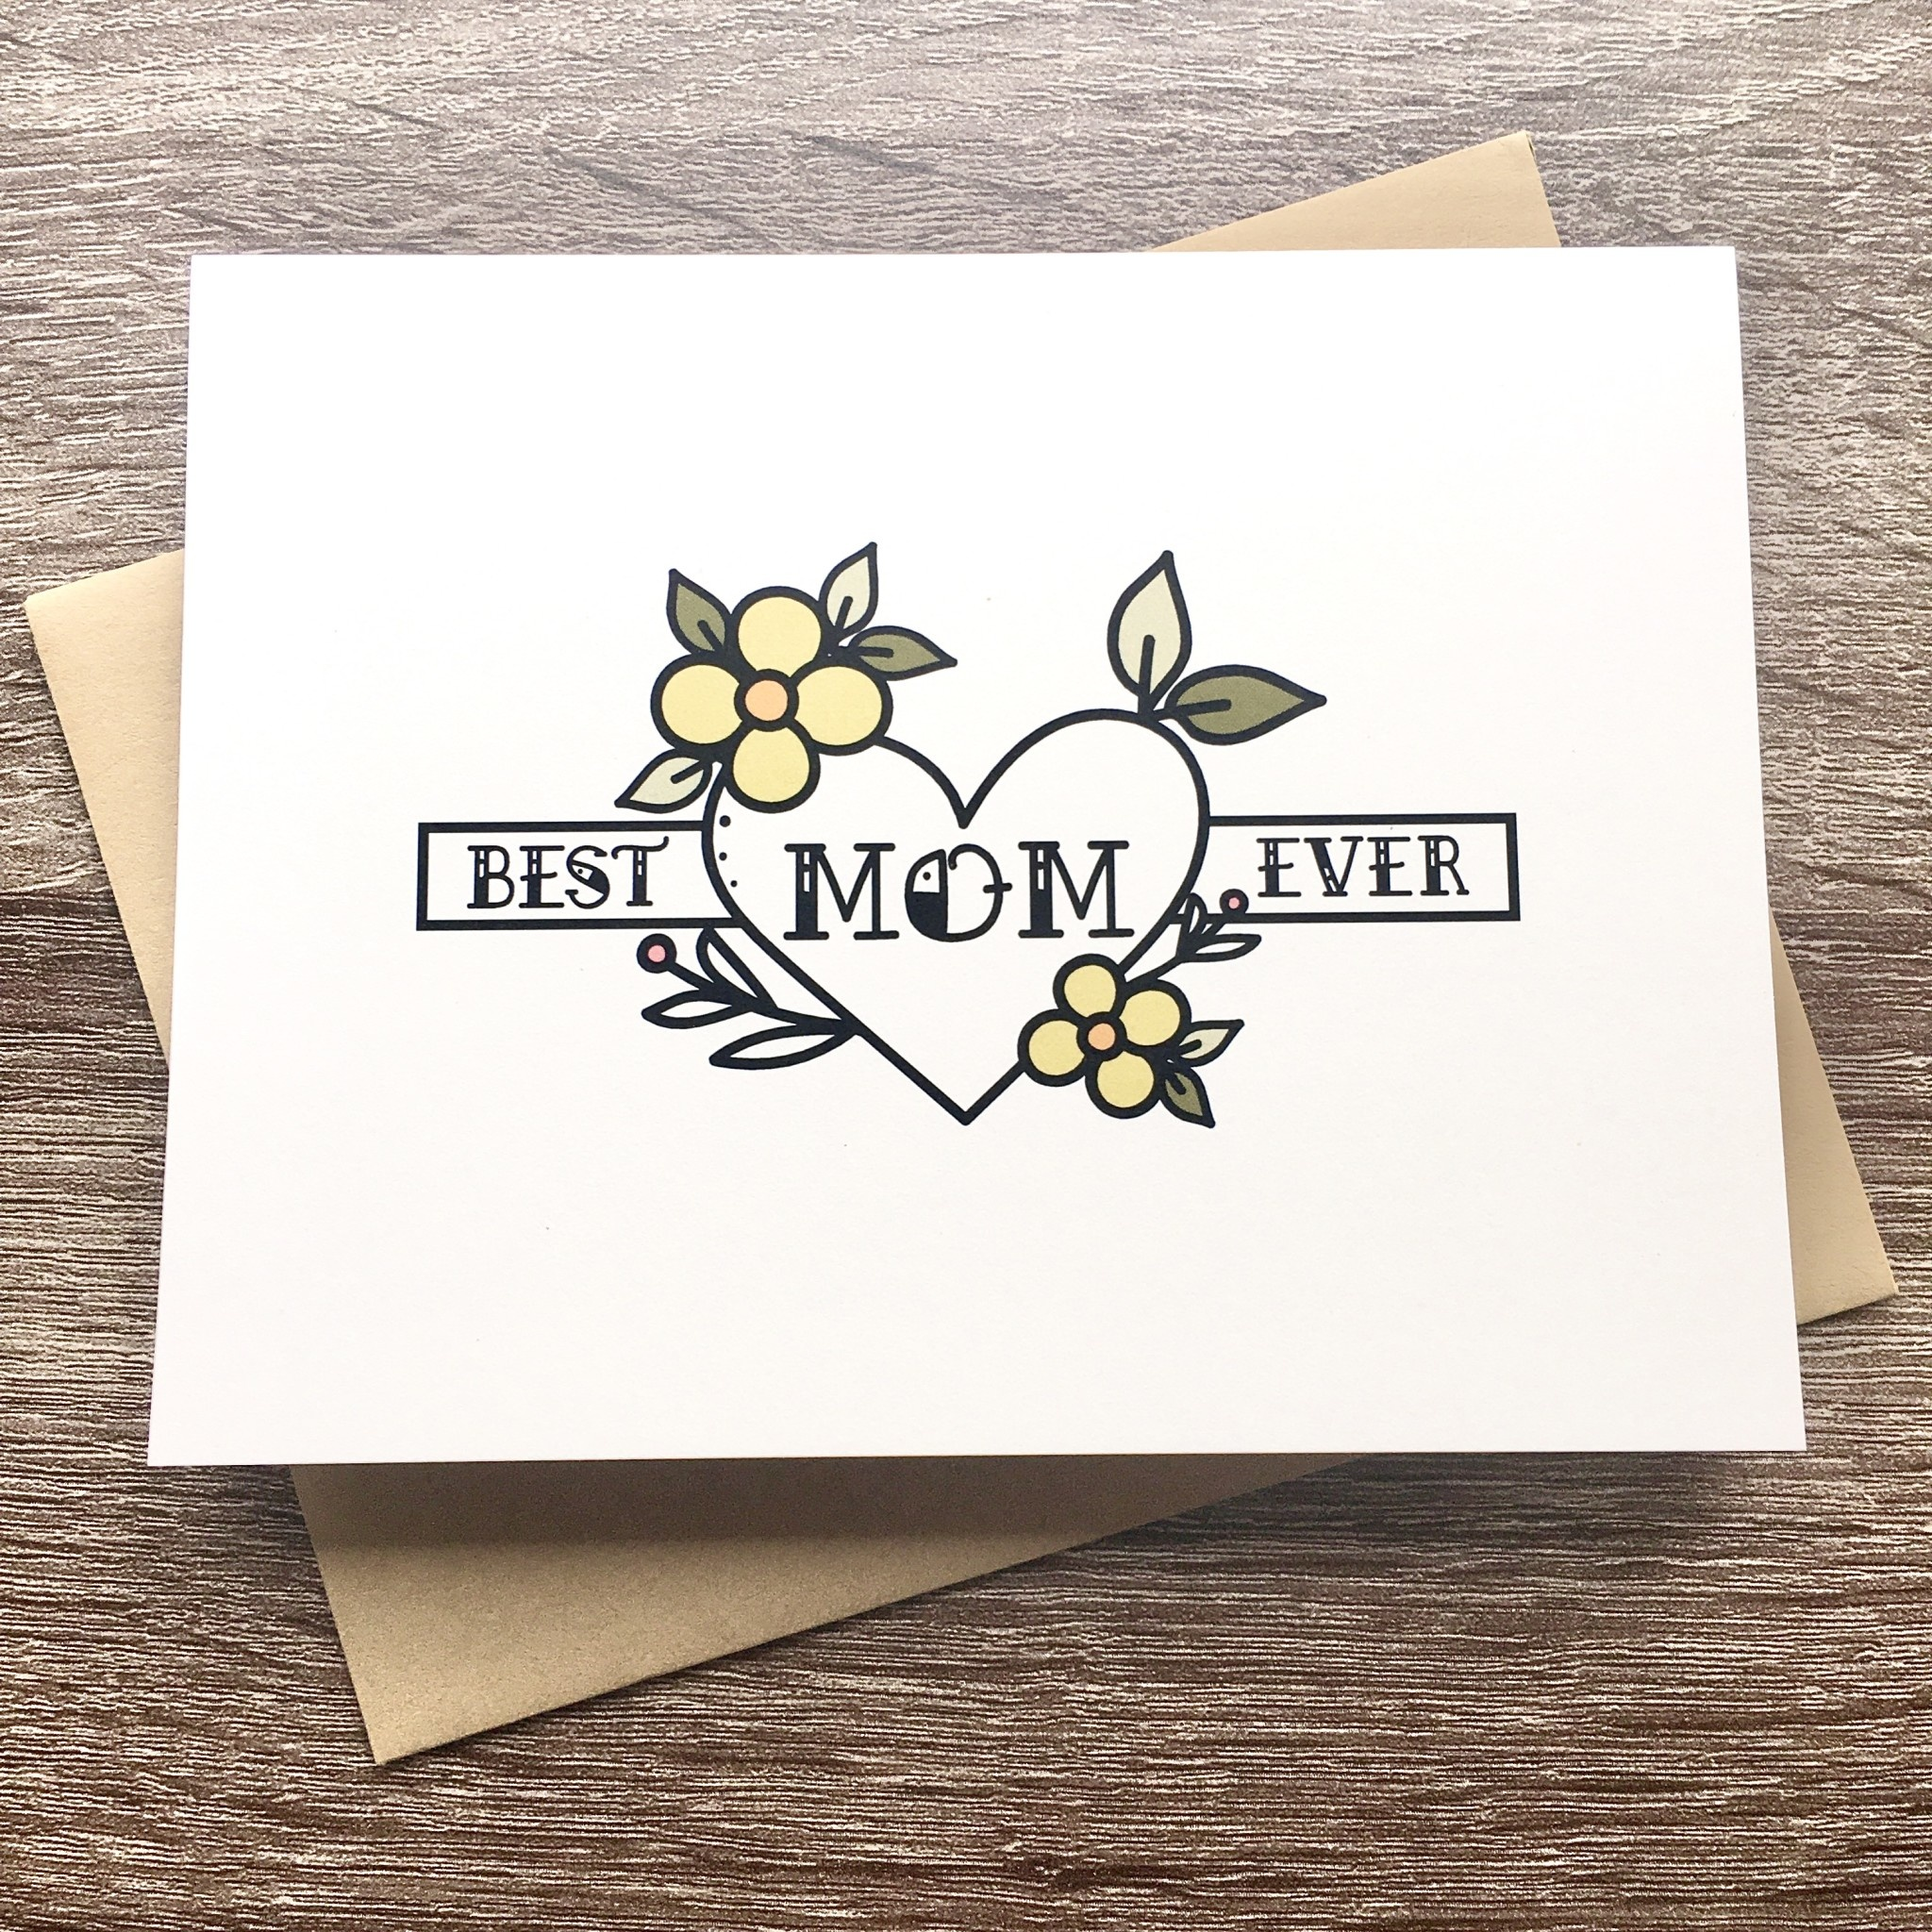 Box Berry Best Mom Ever Green Flowers Greeting Card